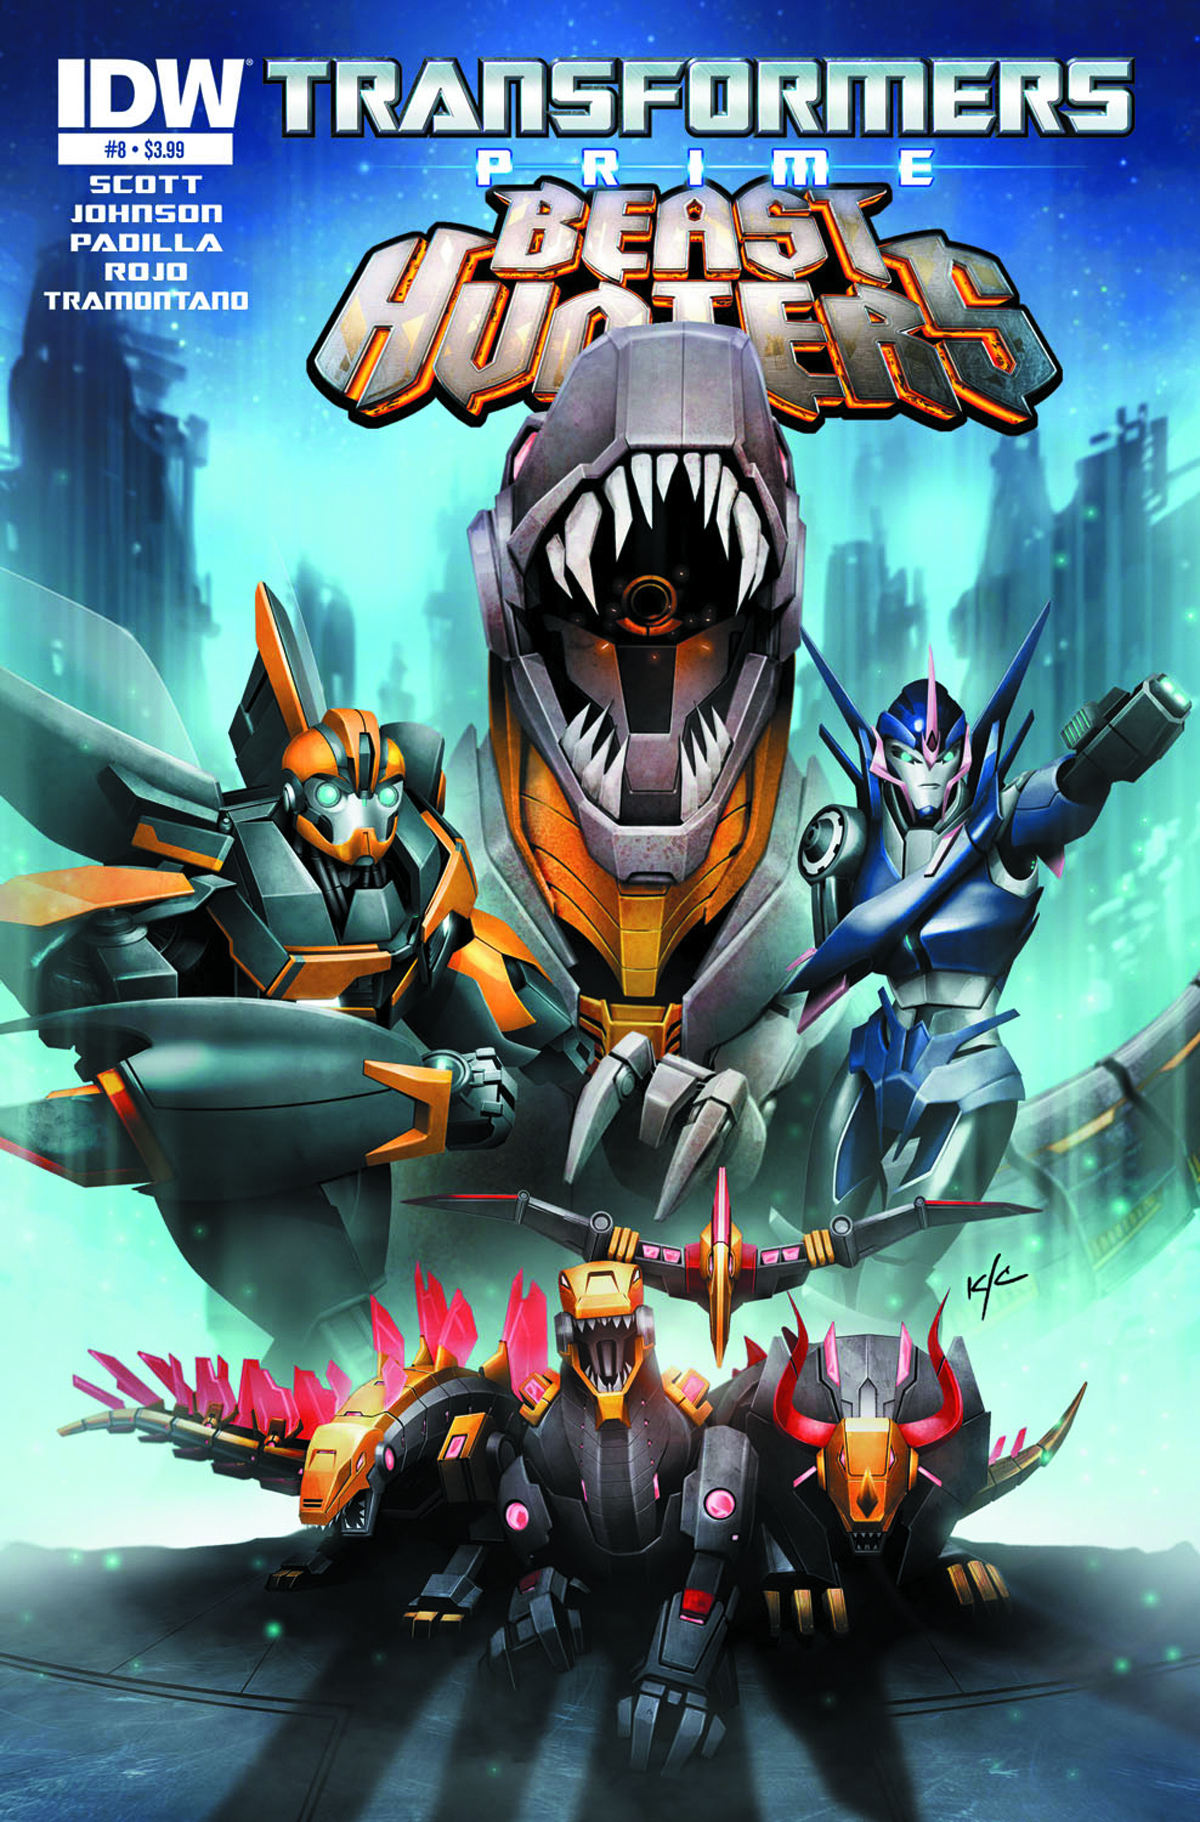 TRANSFORMERS PRIME BEAST HUNTERS #8 FREE 10 COPY INCV